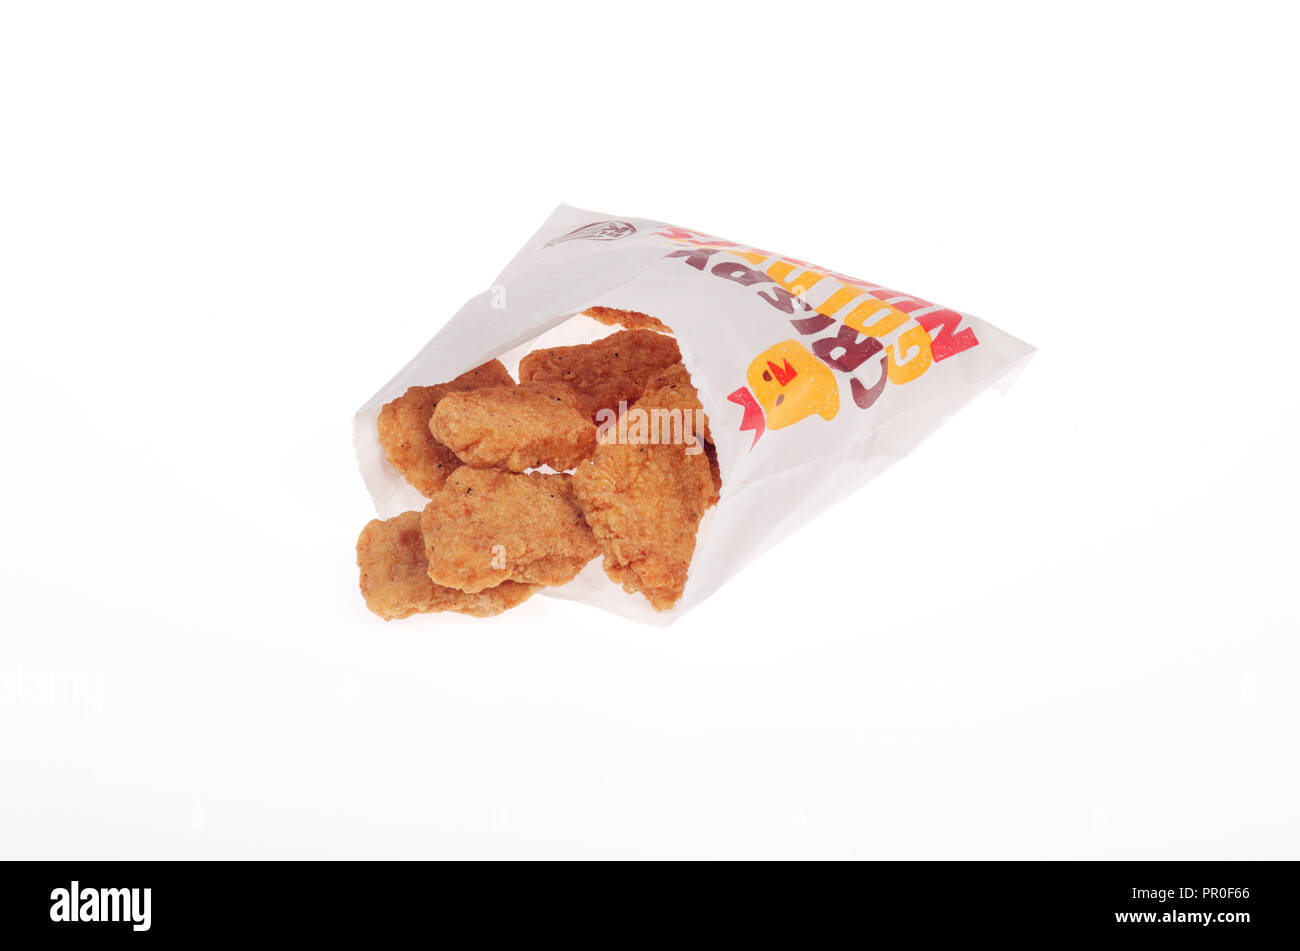 Paket von Burger King Chicken Nuggets Stockbild